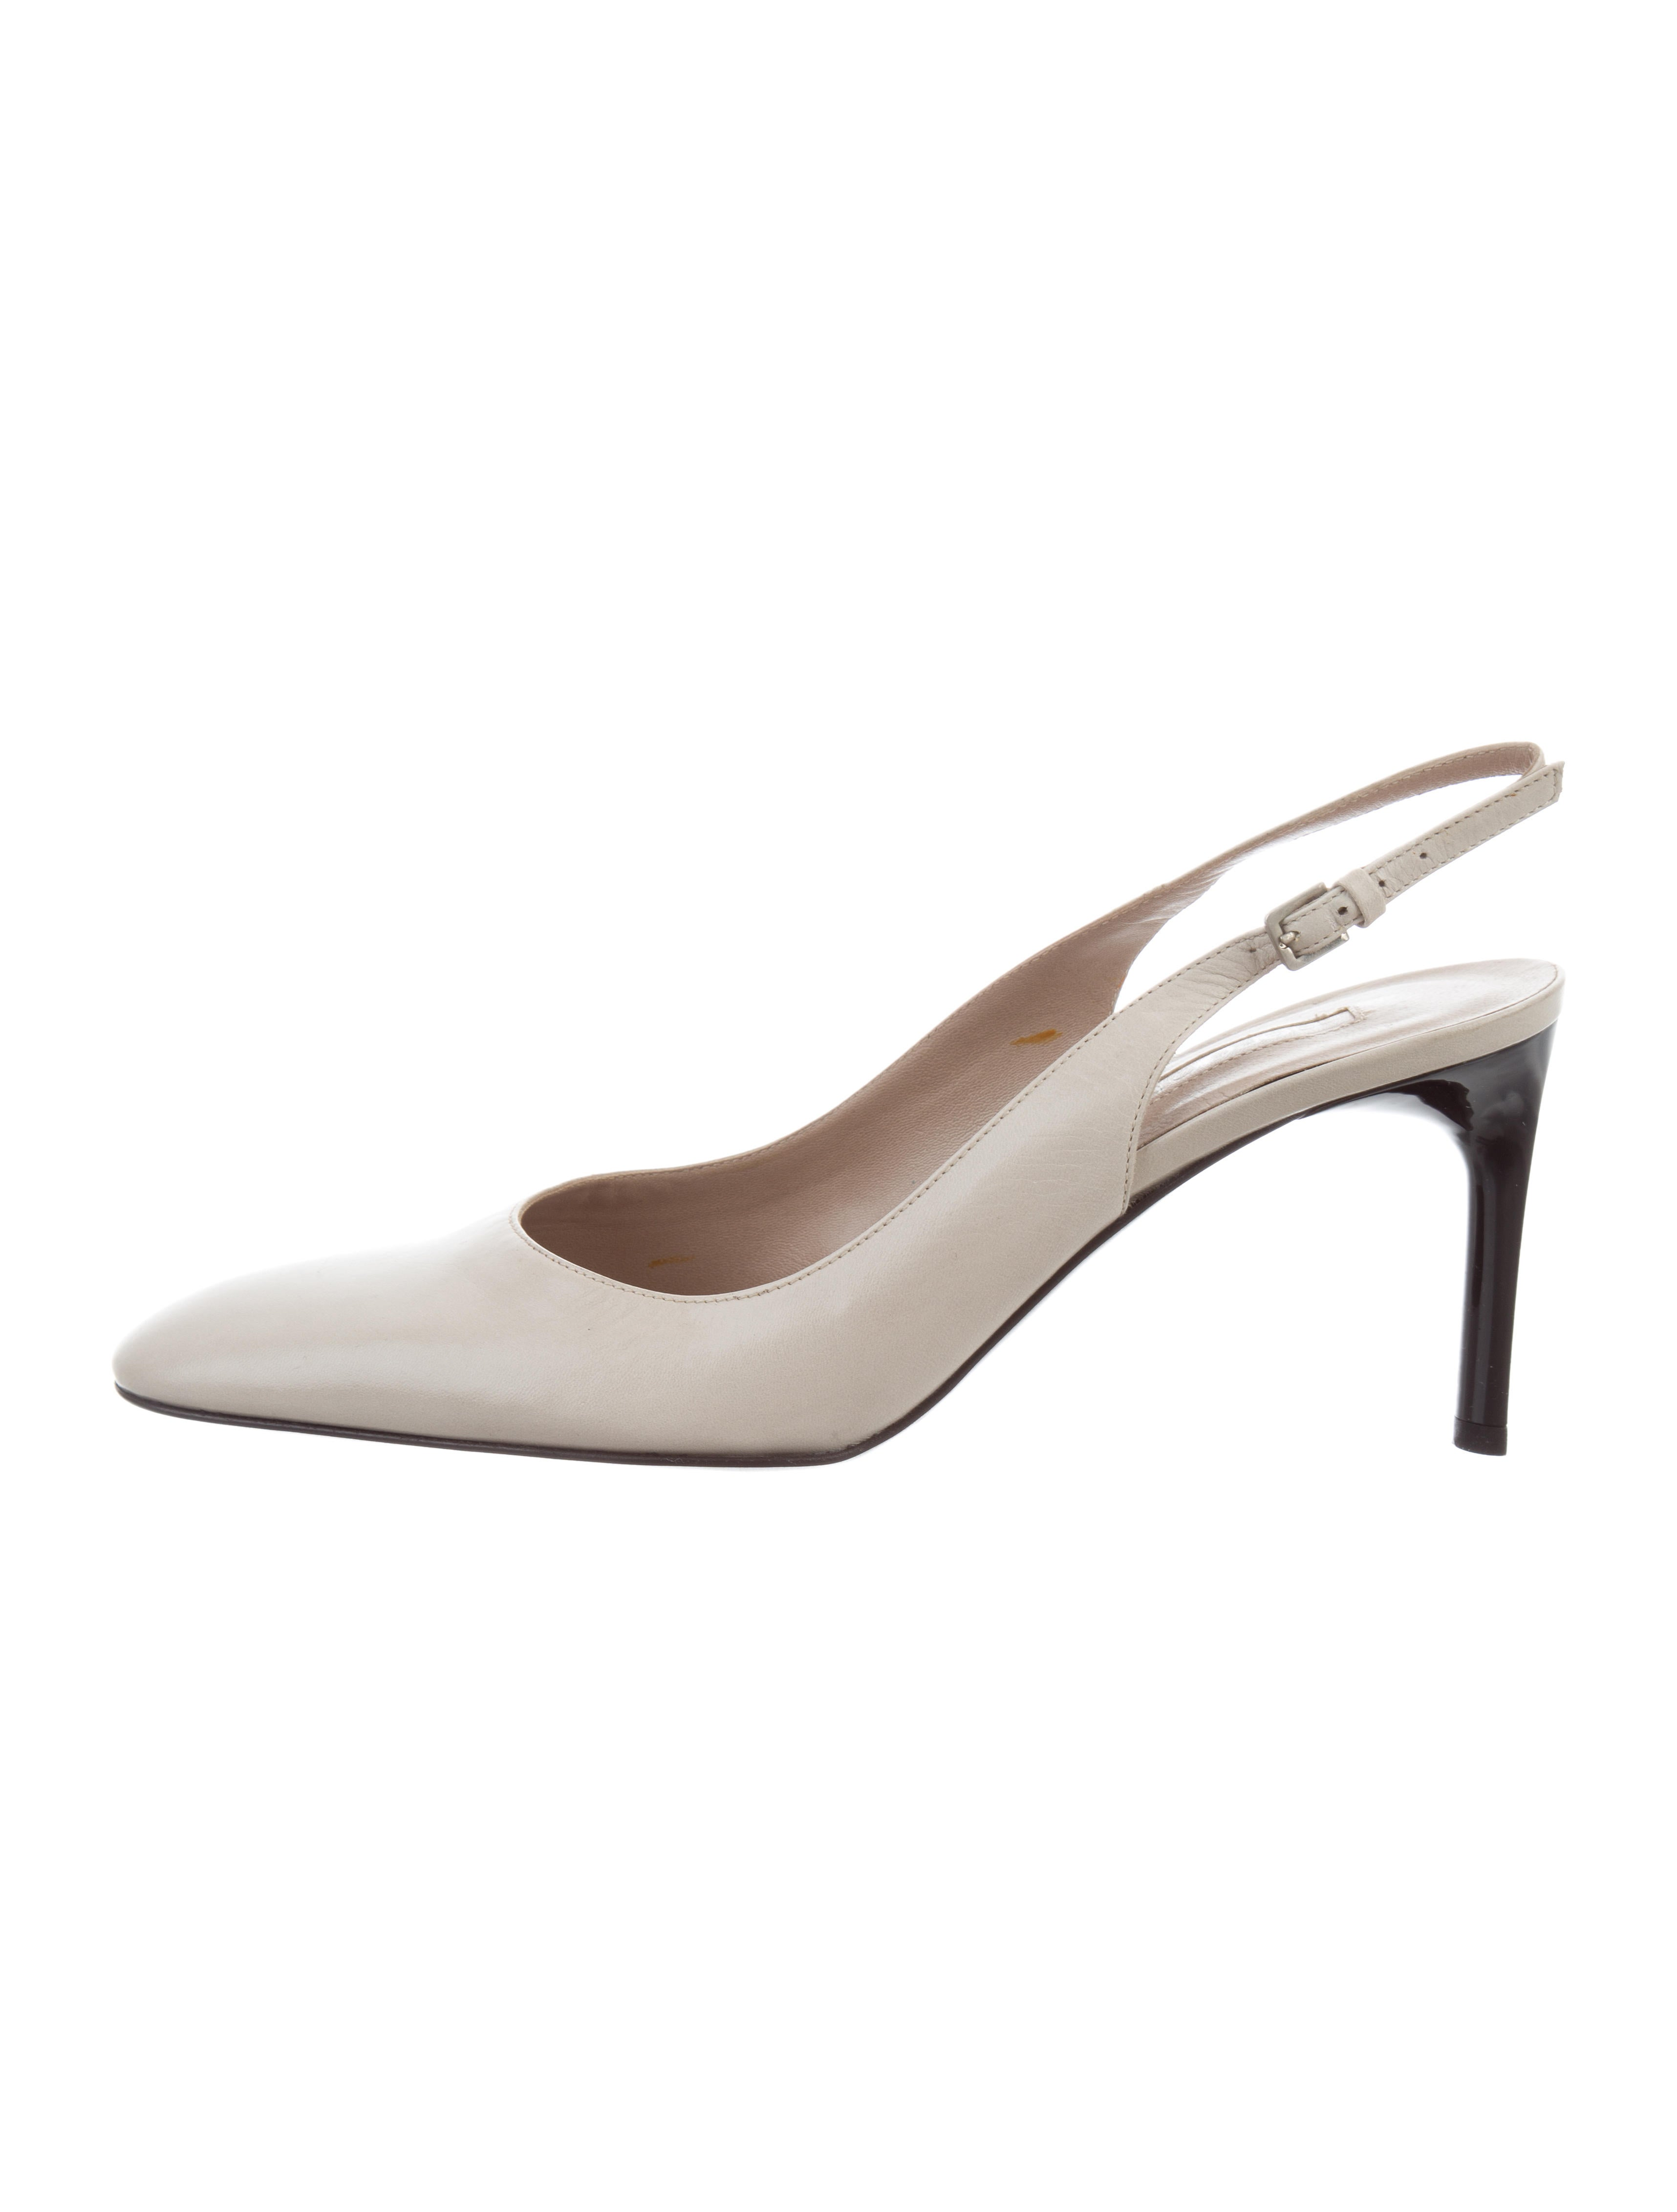 Sergio Rossi Slingback Round-Toe Pumps discount 2014 new in China sale online buy cheap pictures good selling cheap online jwHyfG1p